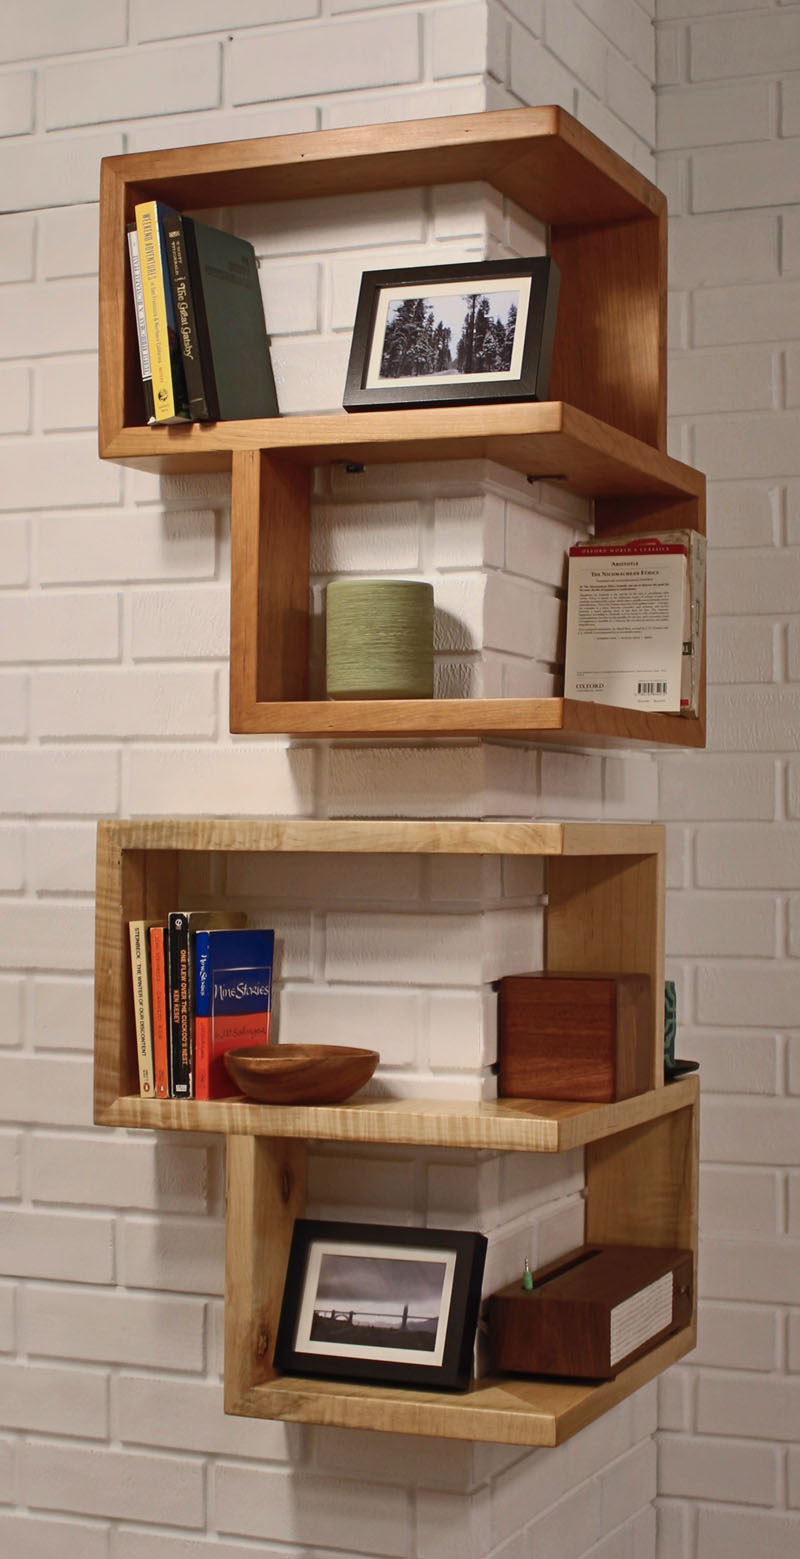 These box shelves hug the corners of your walls and make awkward corners turn into functional storage and decor spaces.